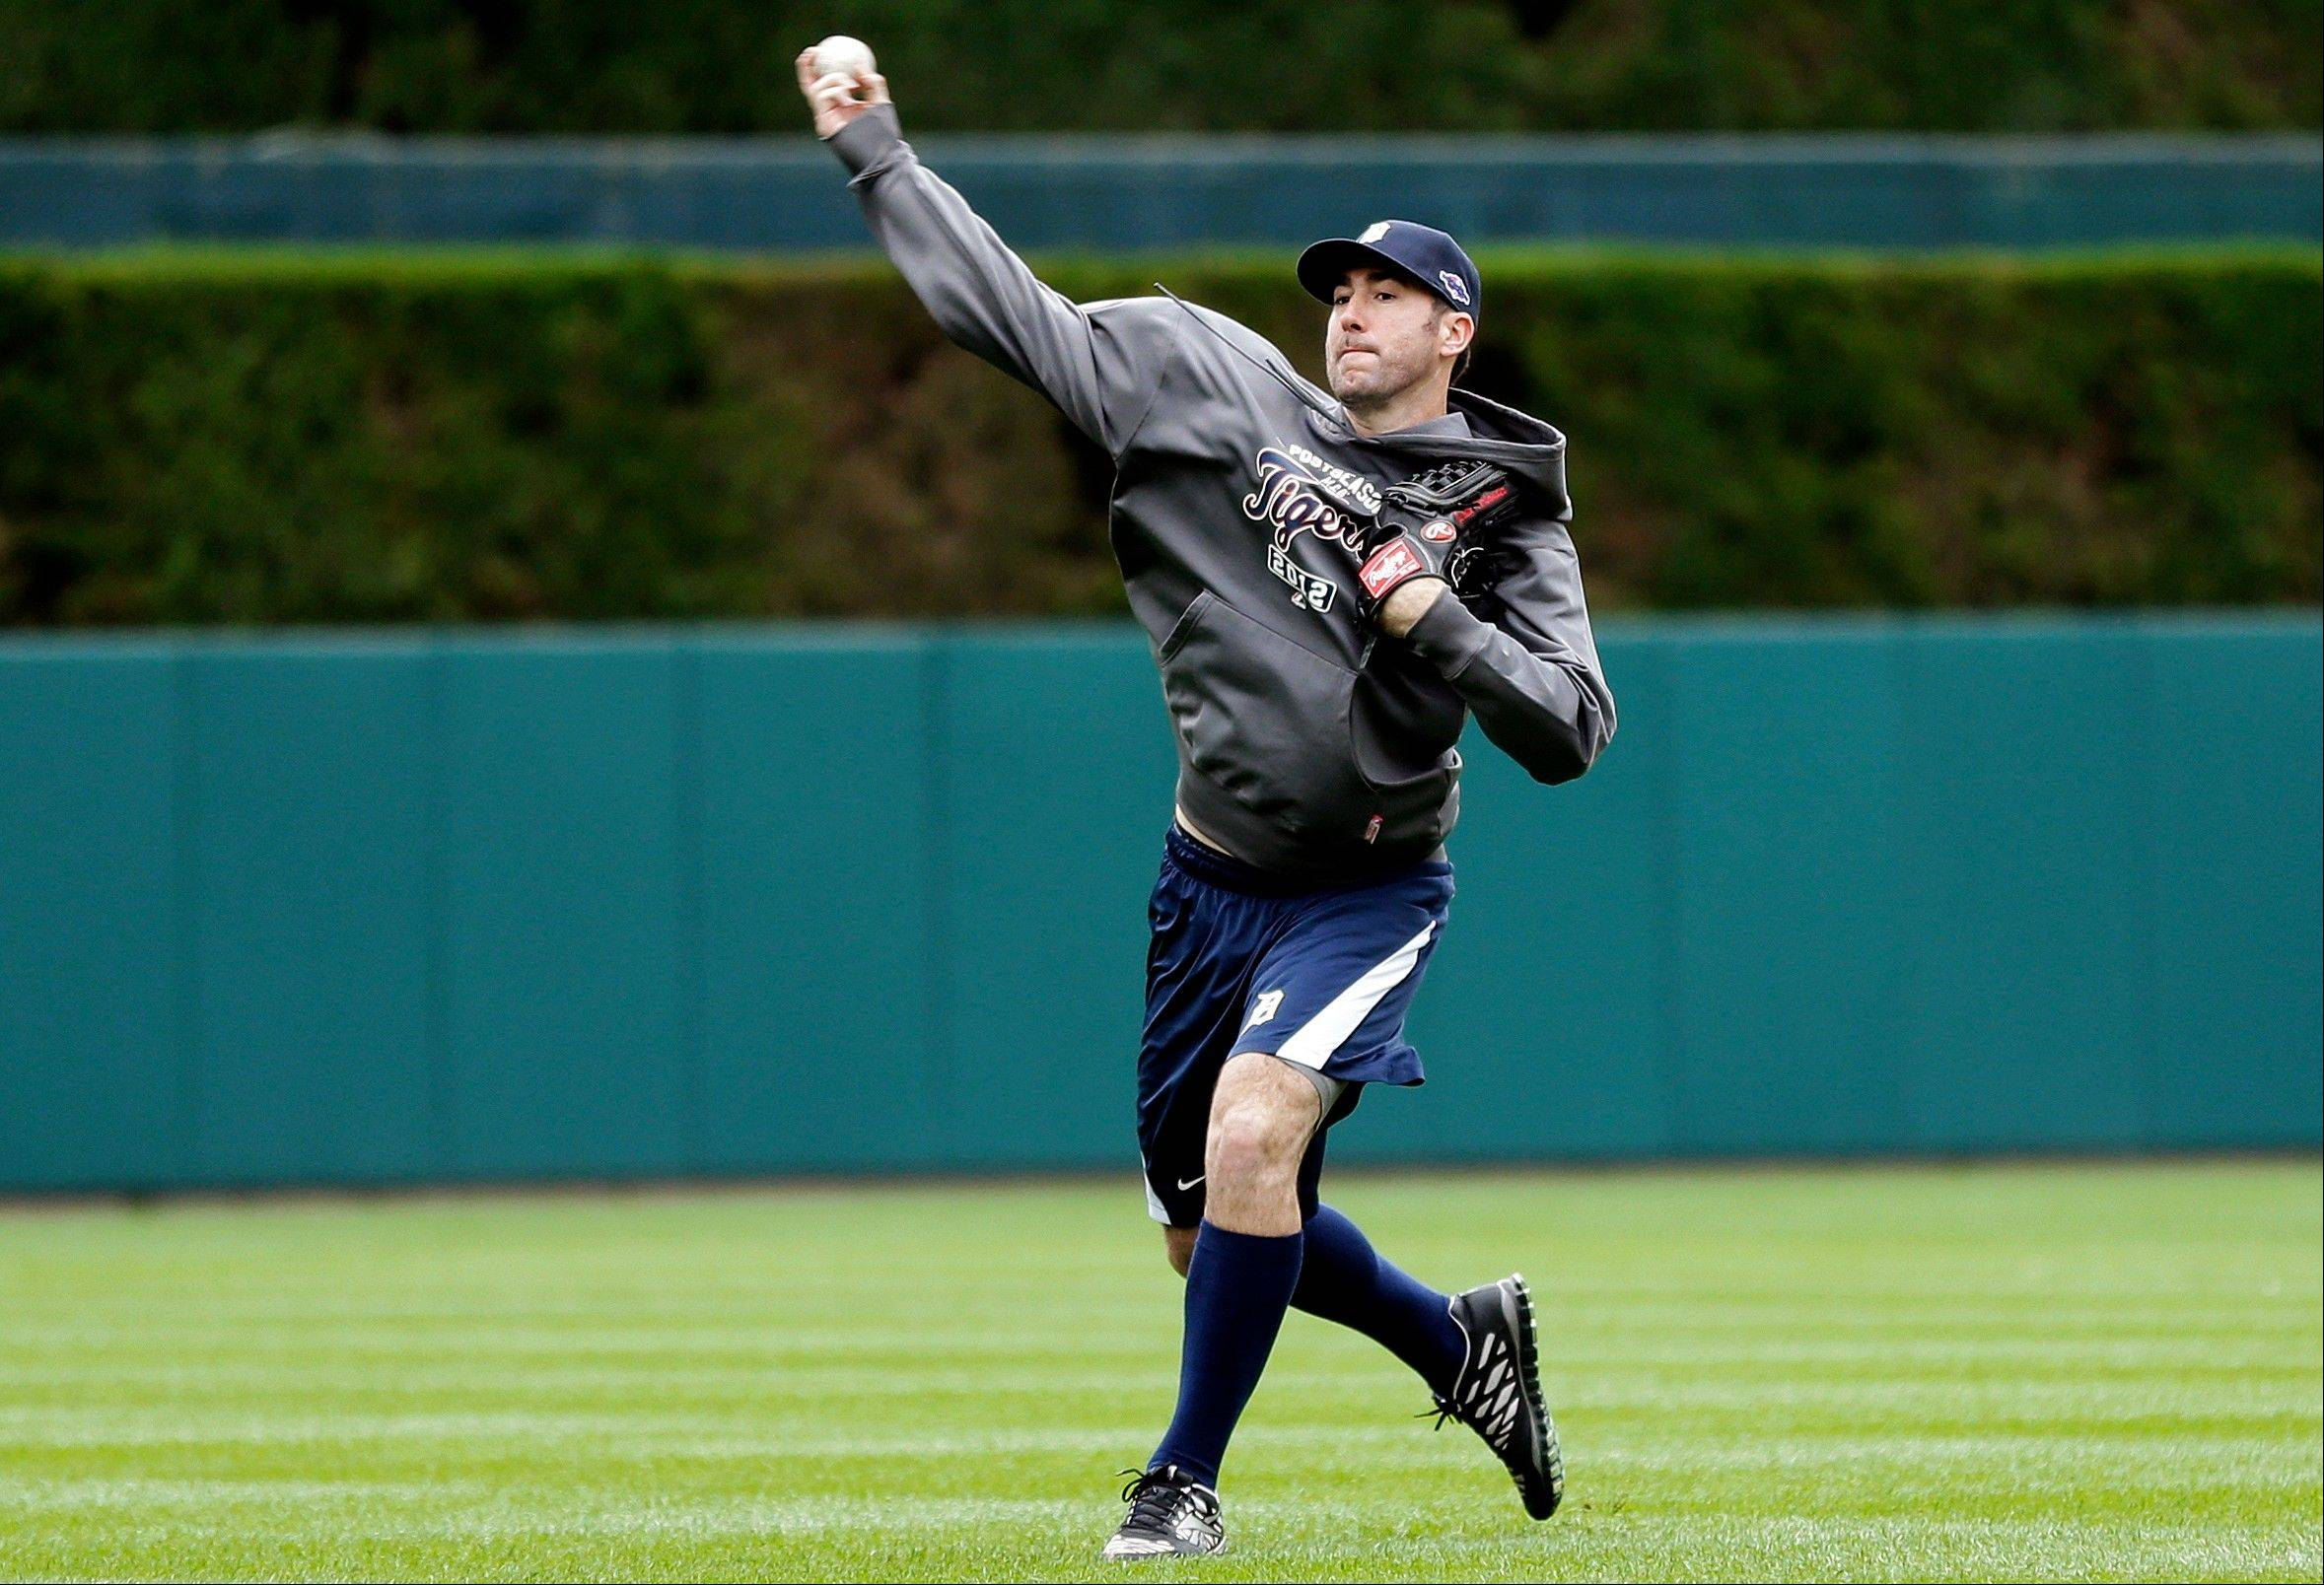 Detroit Tigers pitcher Justin Verlander throws Monday at Comerica Park in Detroit to prepare for his start against the New York Yankees in Game 3 of the American League championship series Tuesday. Detroit leads the series 2-0.